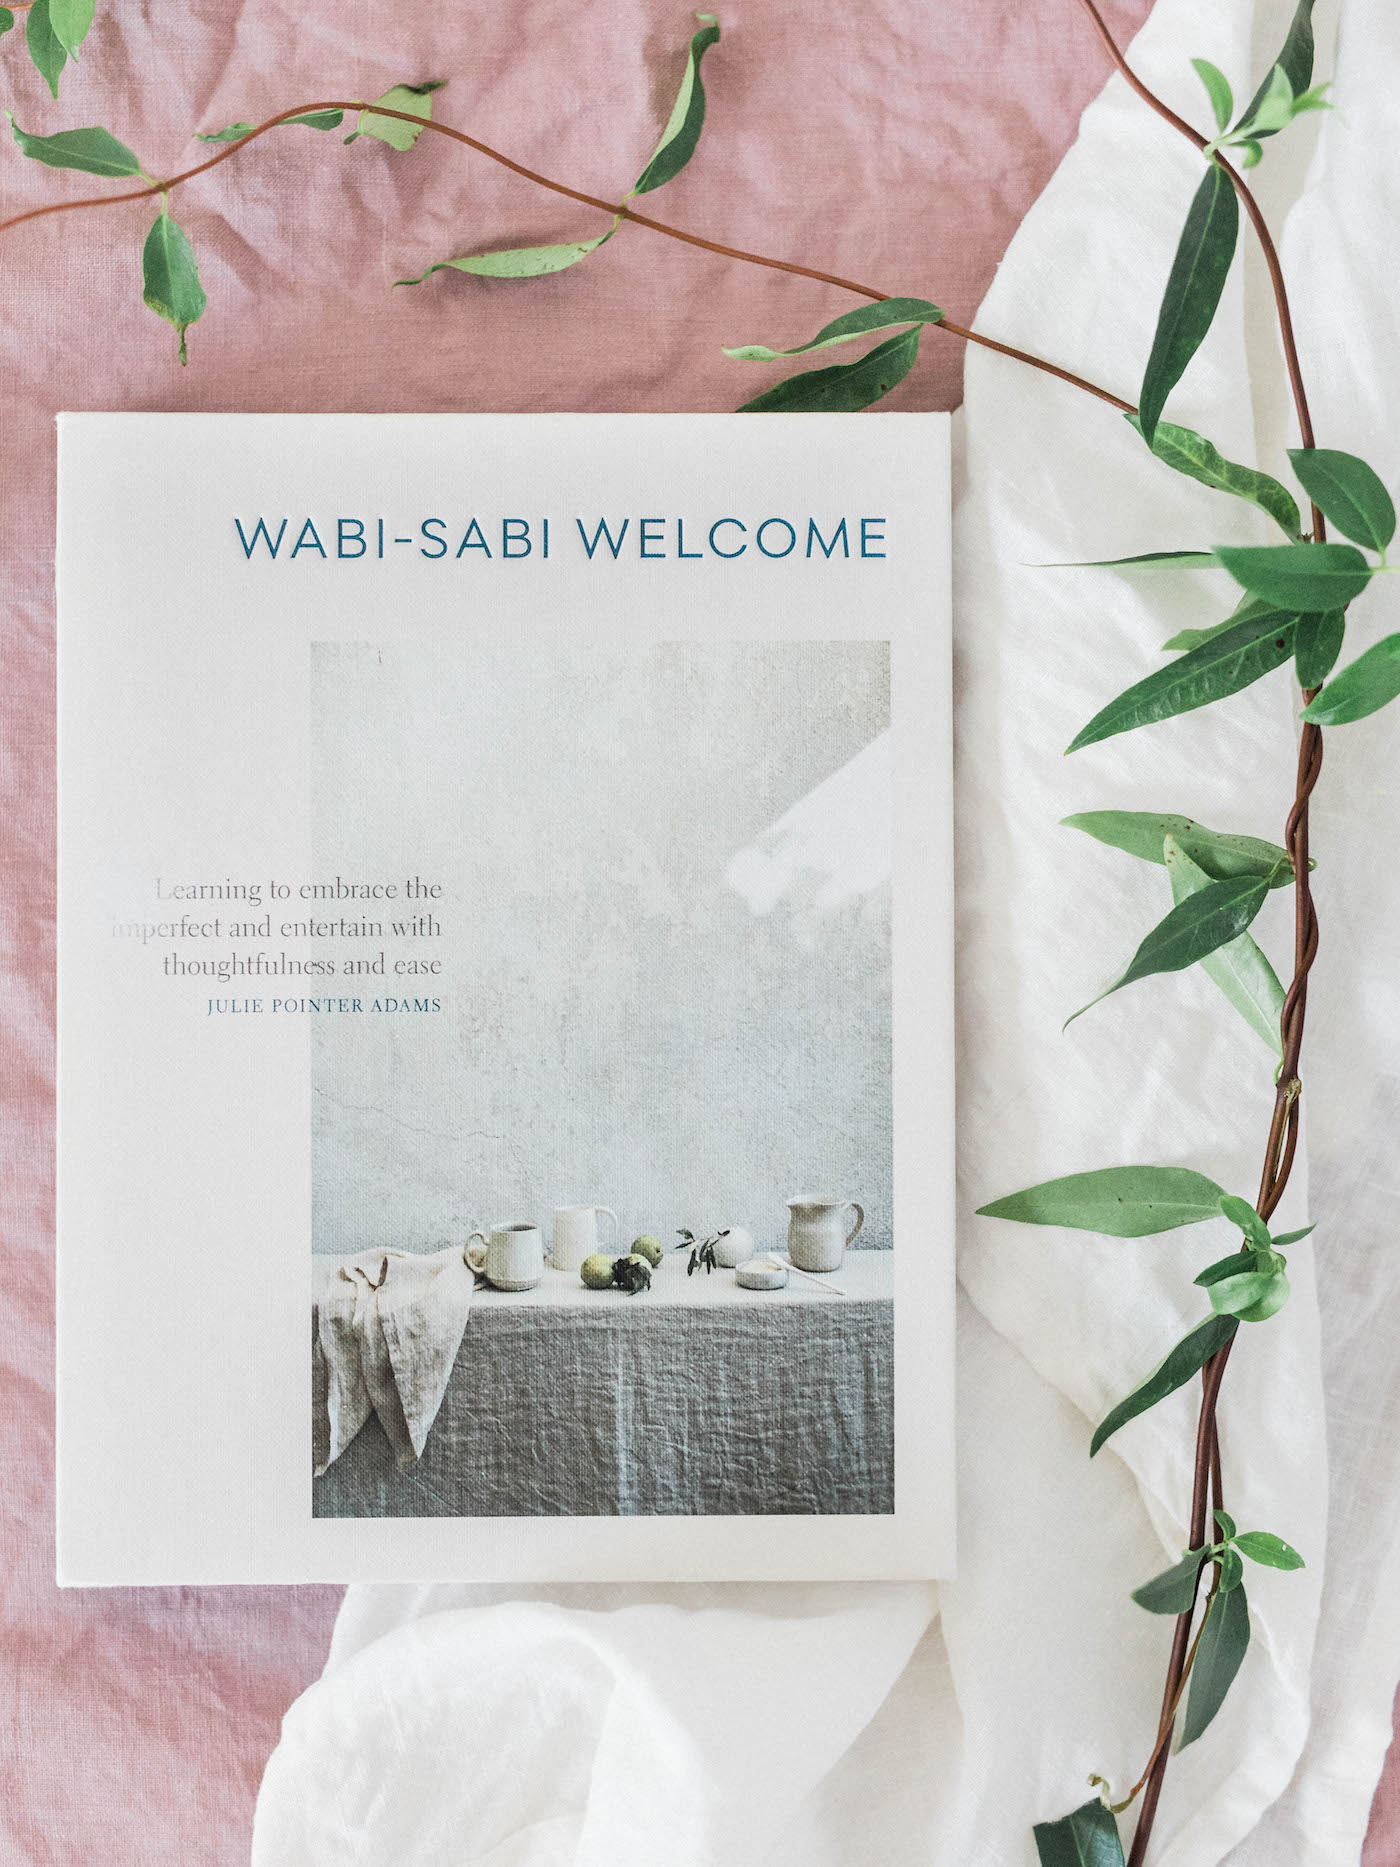 Stylist And Product Photographer - Voyage And Heart - NYC Brand Photographer - Wabi Sabi Welcome by Julie Pointer Adams